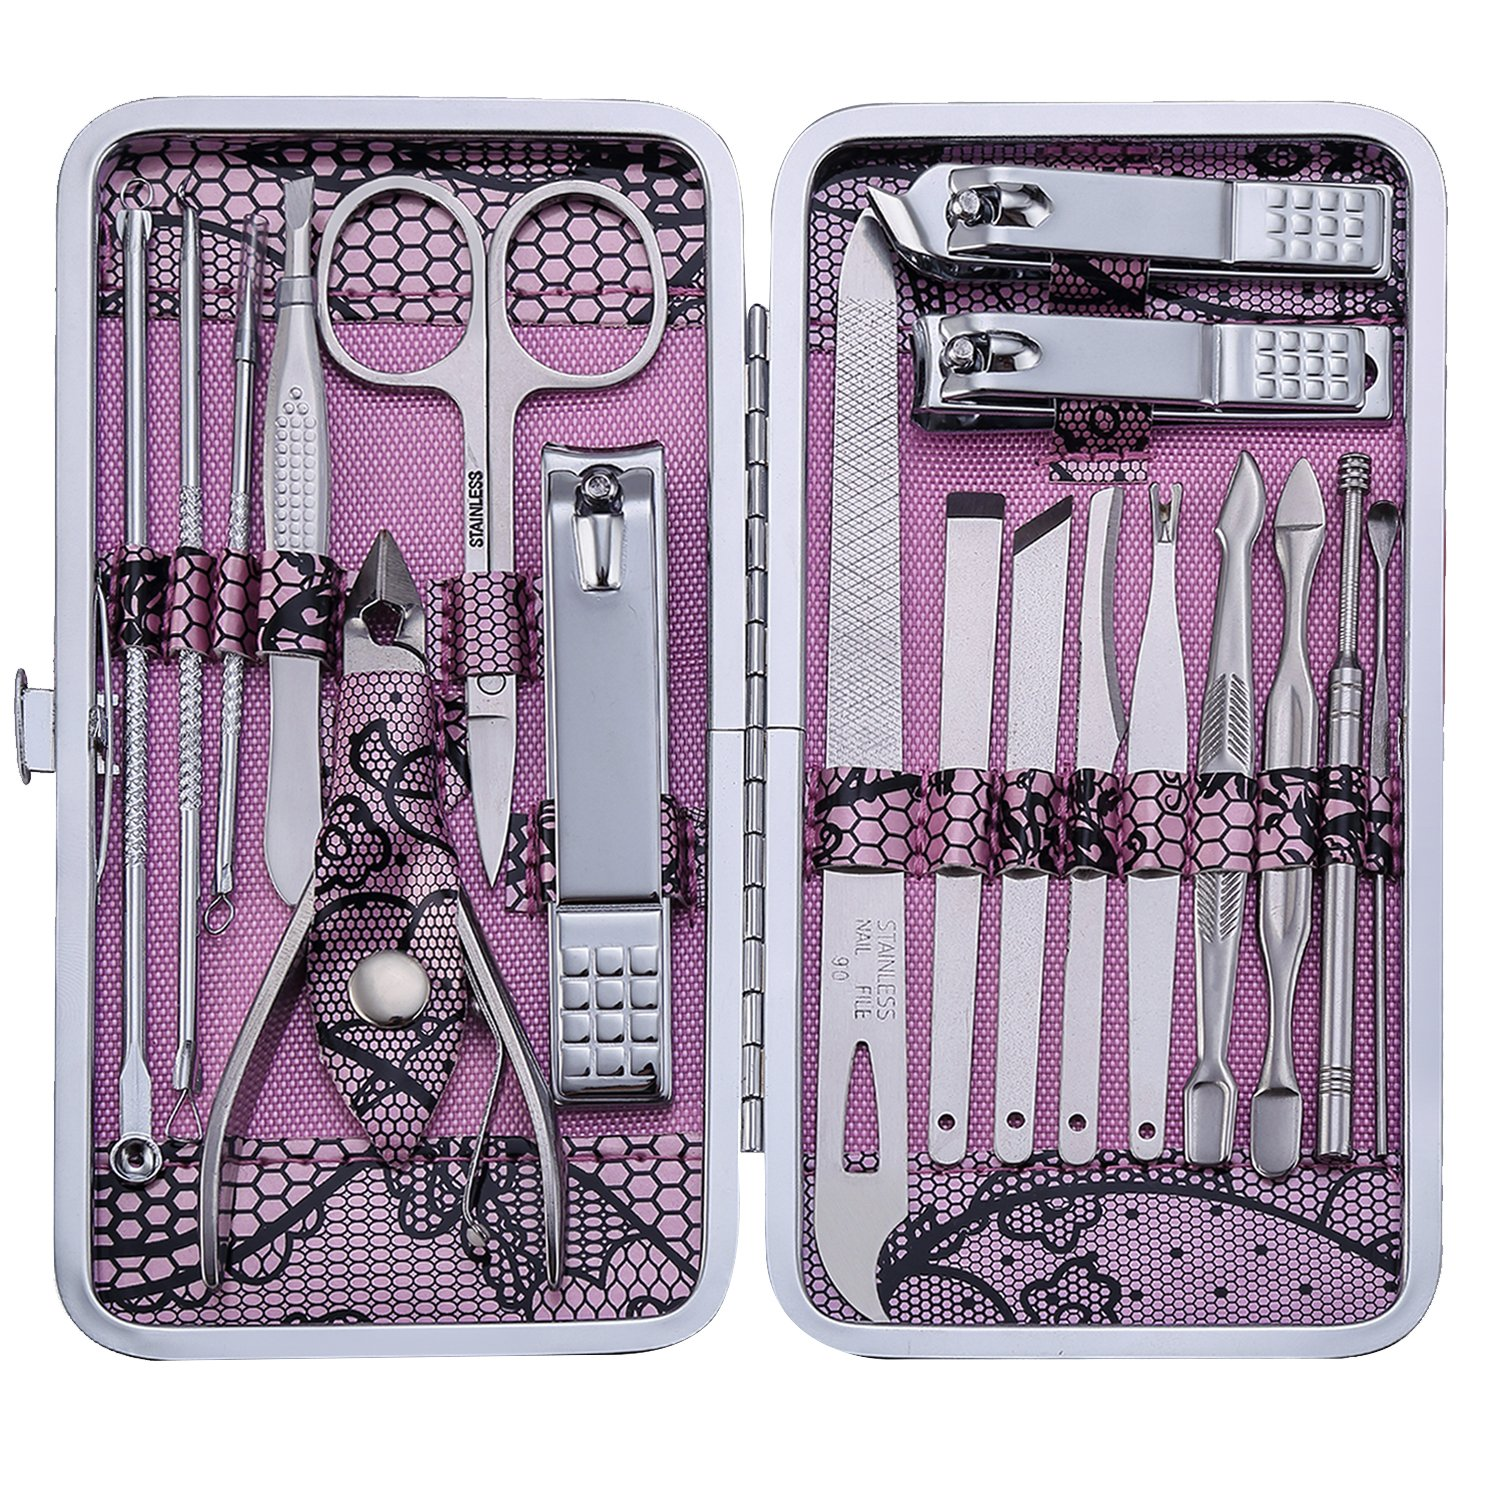 Manicure Set Nail Clippers 18 Piece Stainless Steel Nail Kit, Professional Grooming Kit, Pedicure Tools with Travel Case (Pink)